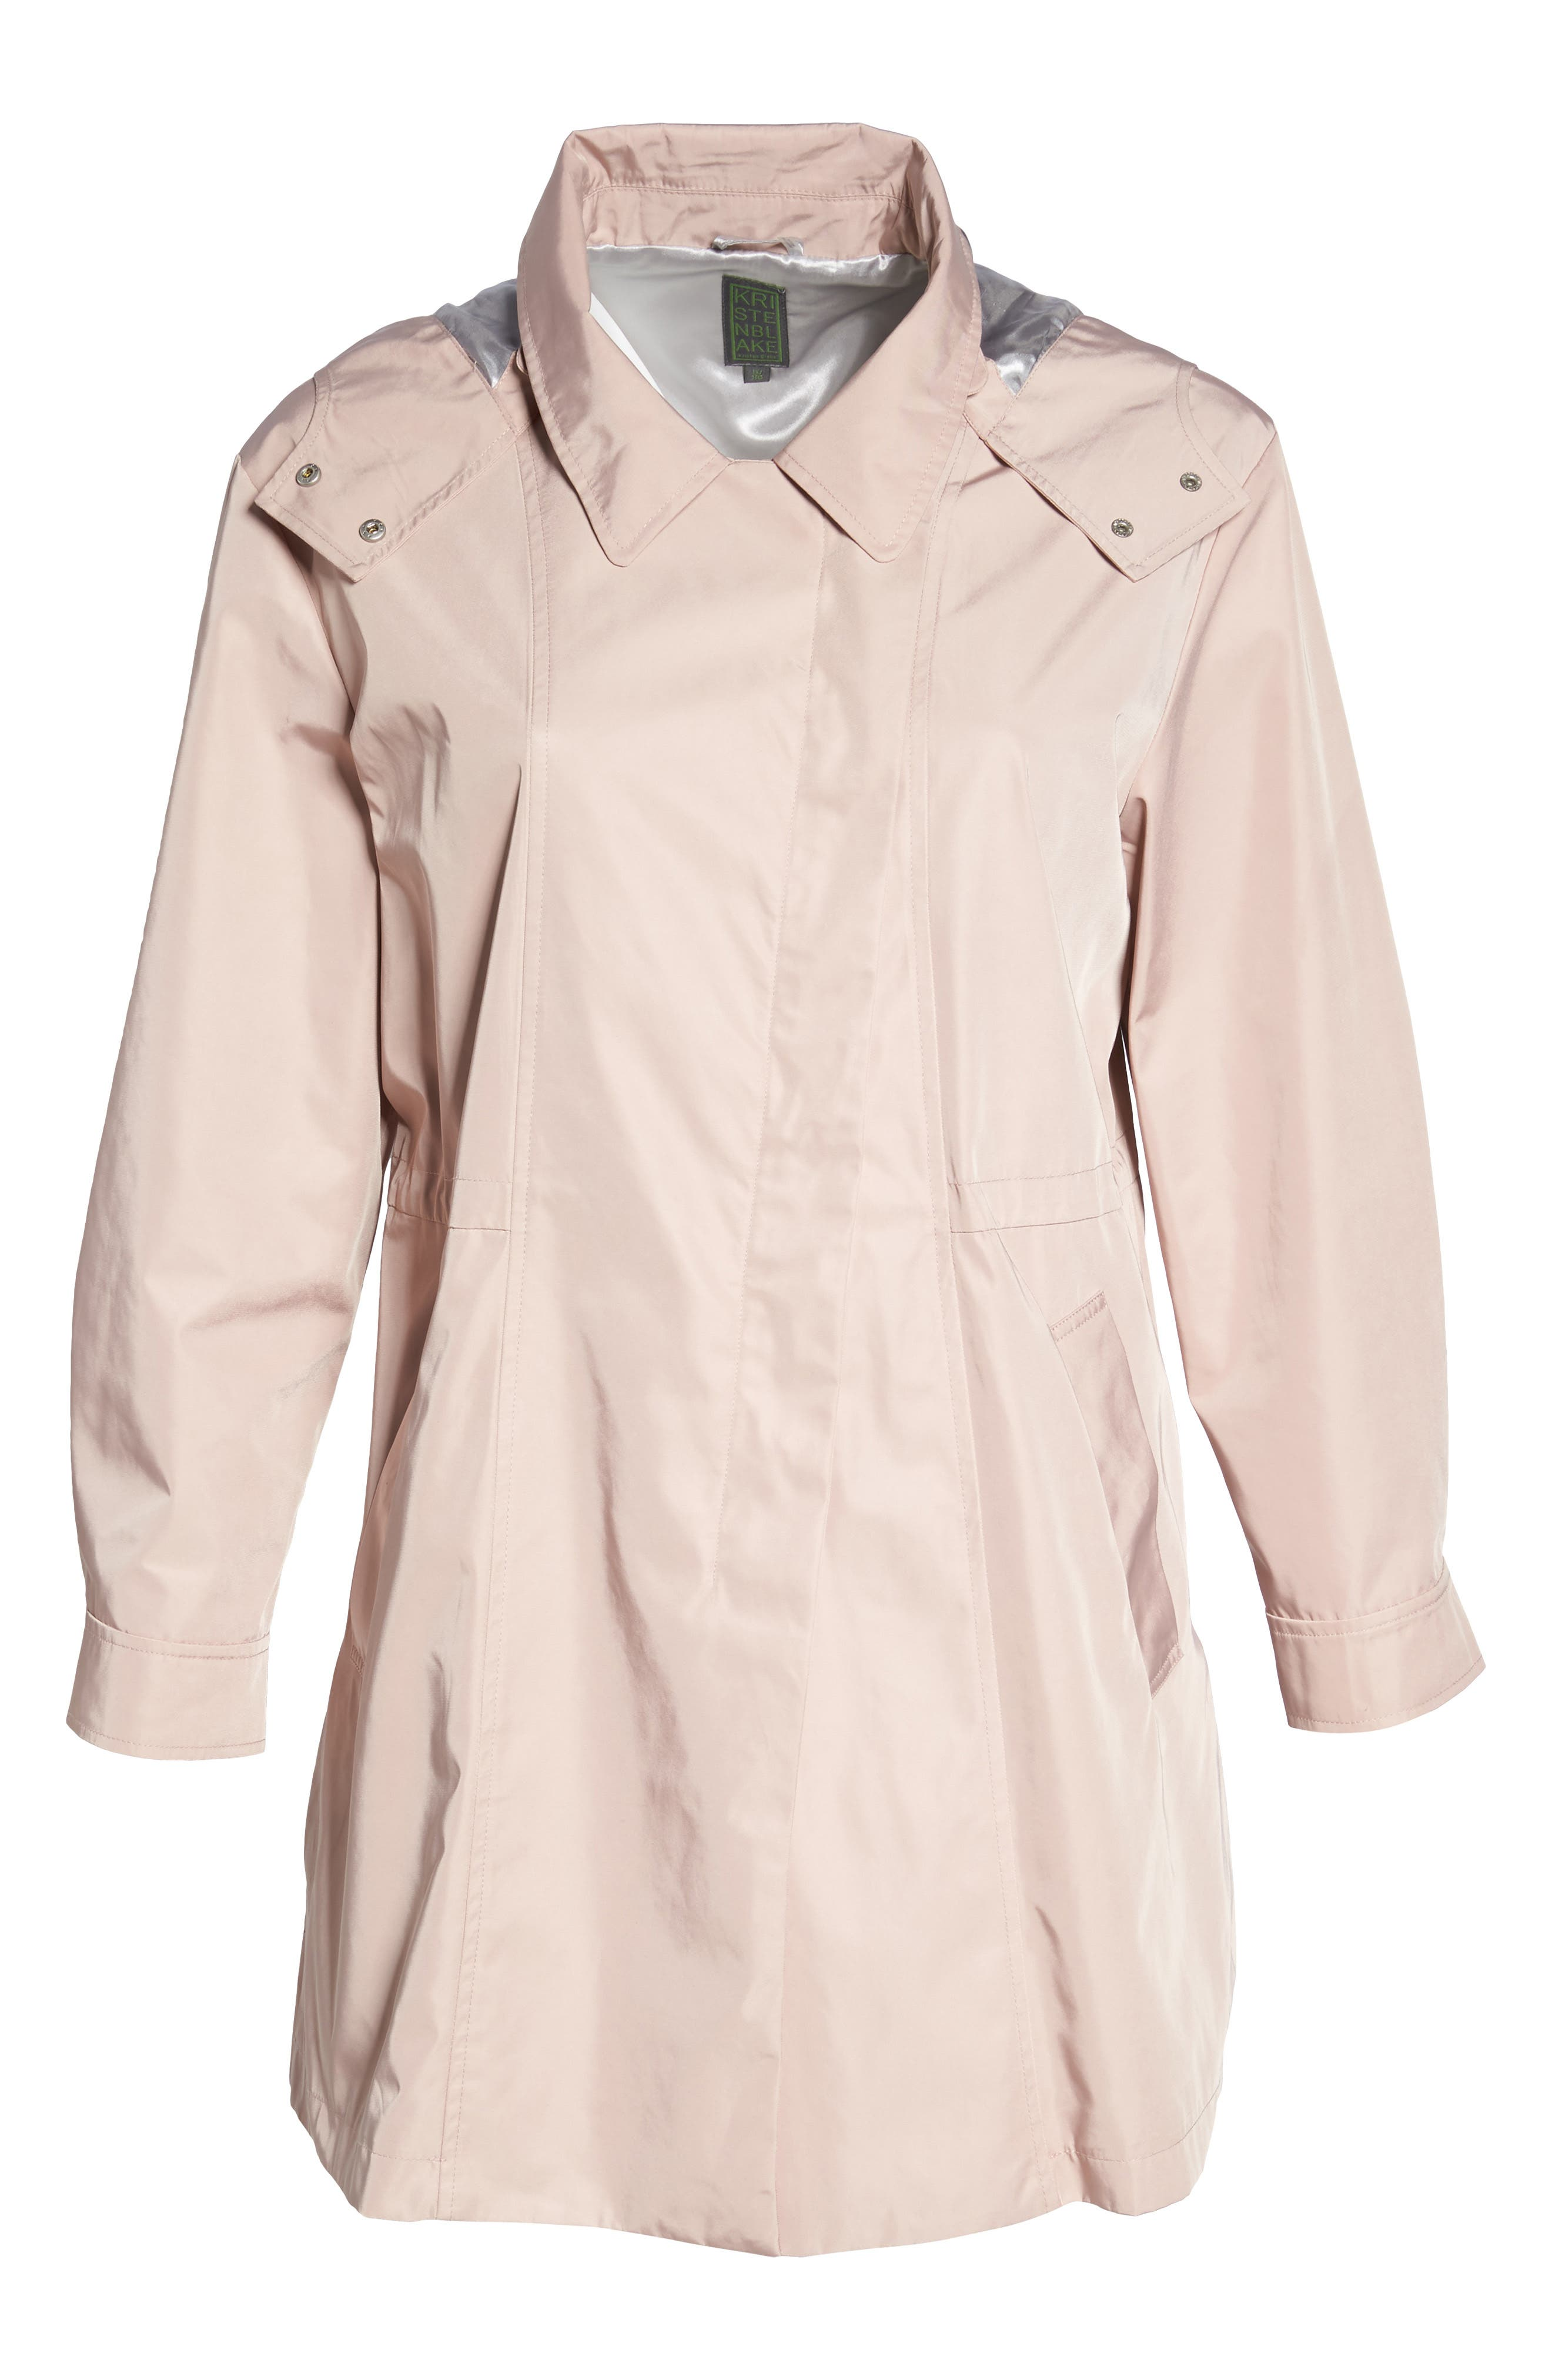 Tech Hooded Trench Coat,                             Alternate thumbnail 7, color,                             Misty Rose